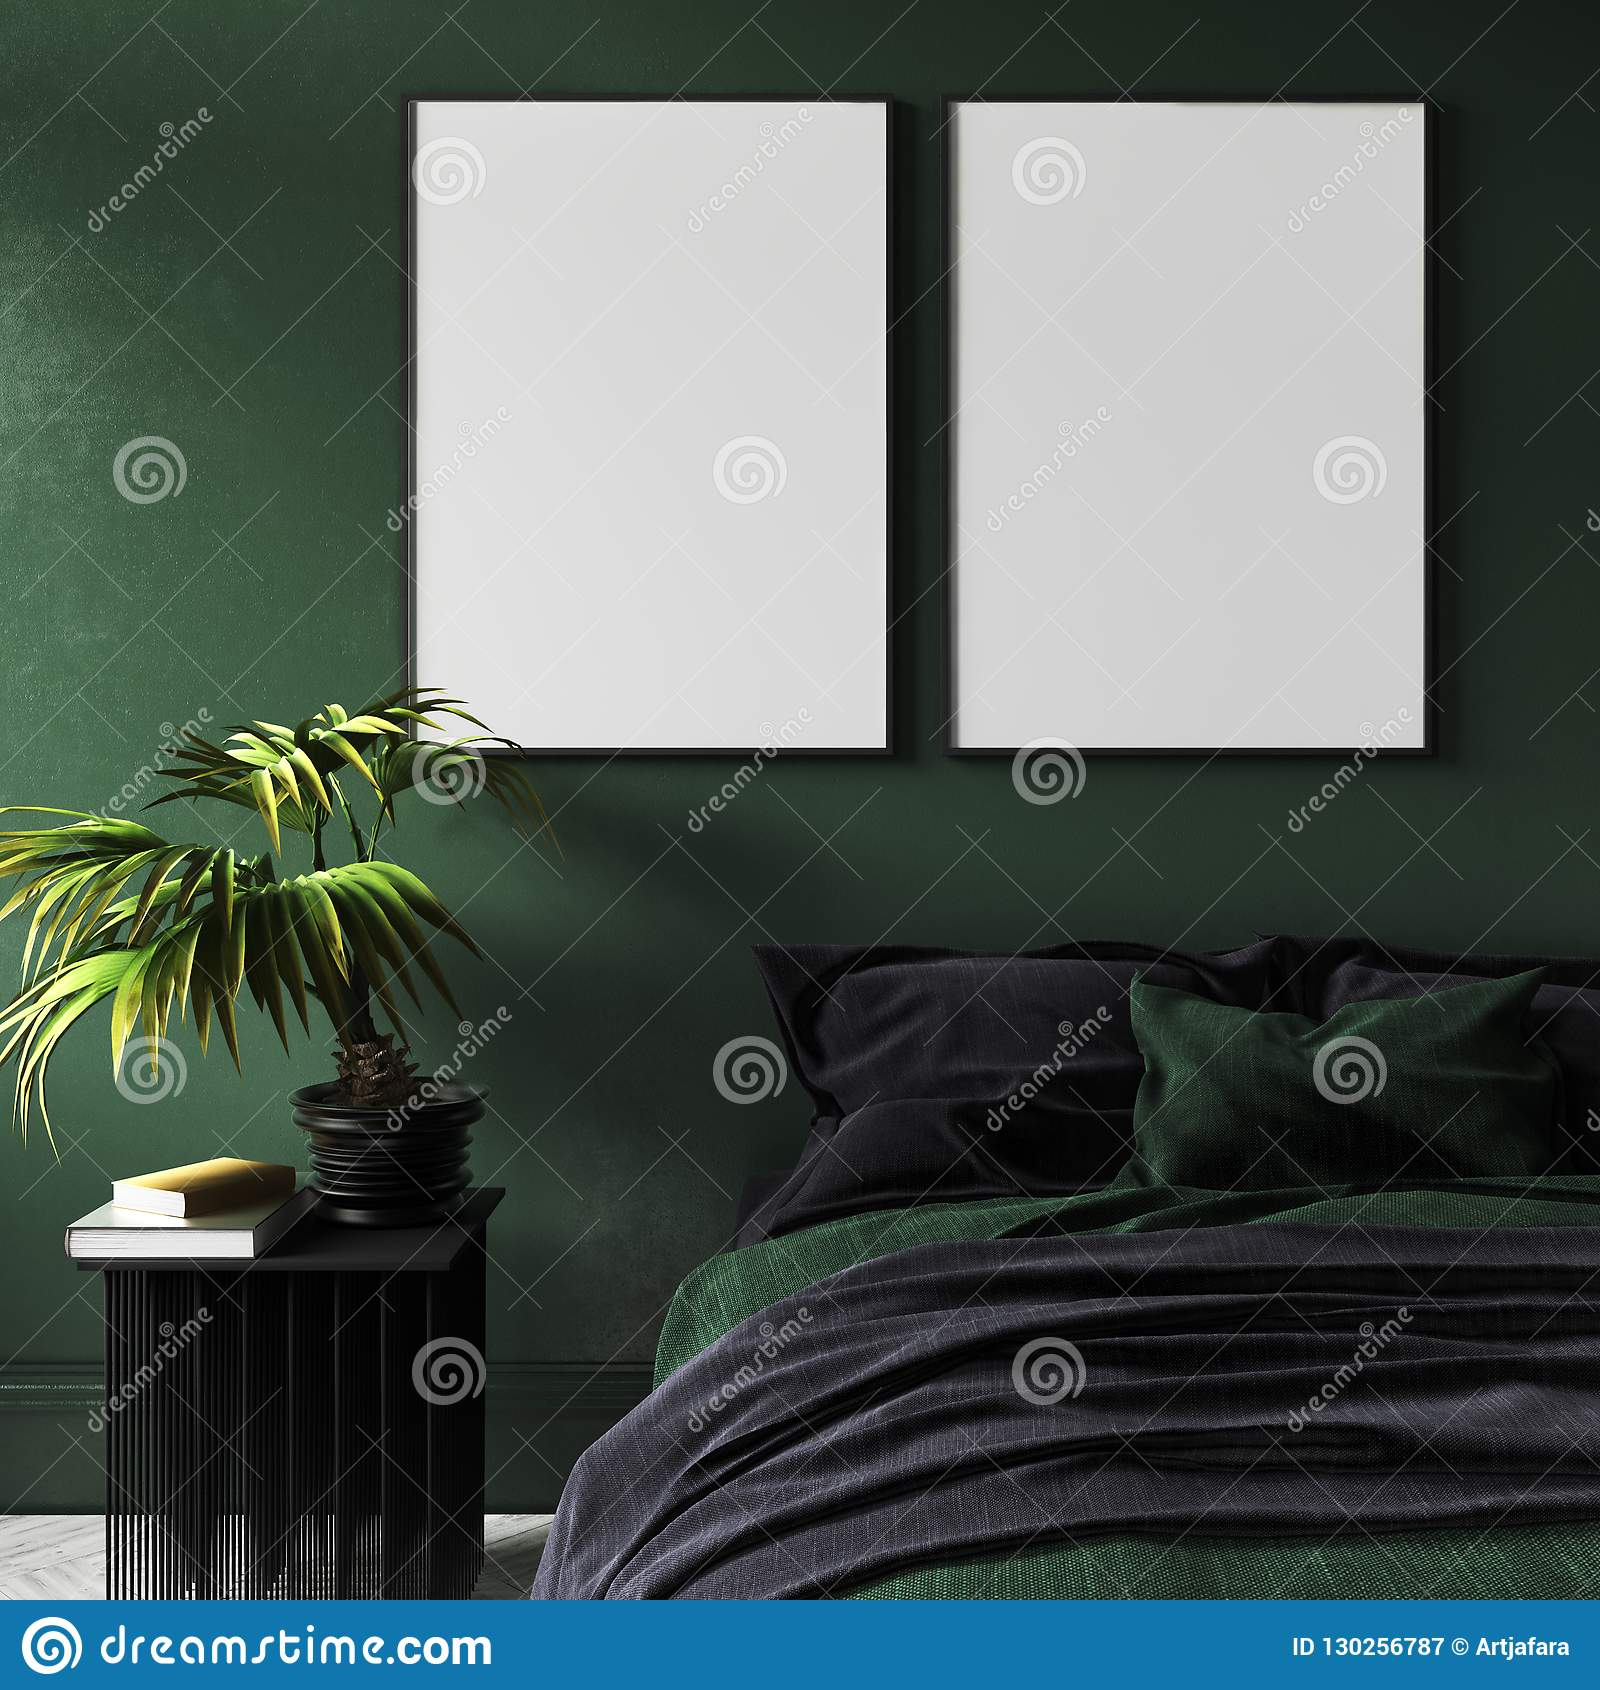 Mock-up poster in modern dark green bedroom interior with potted plant on table